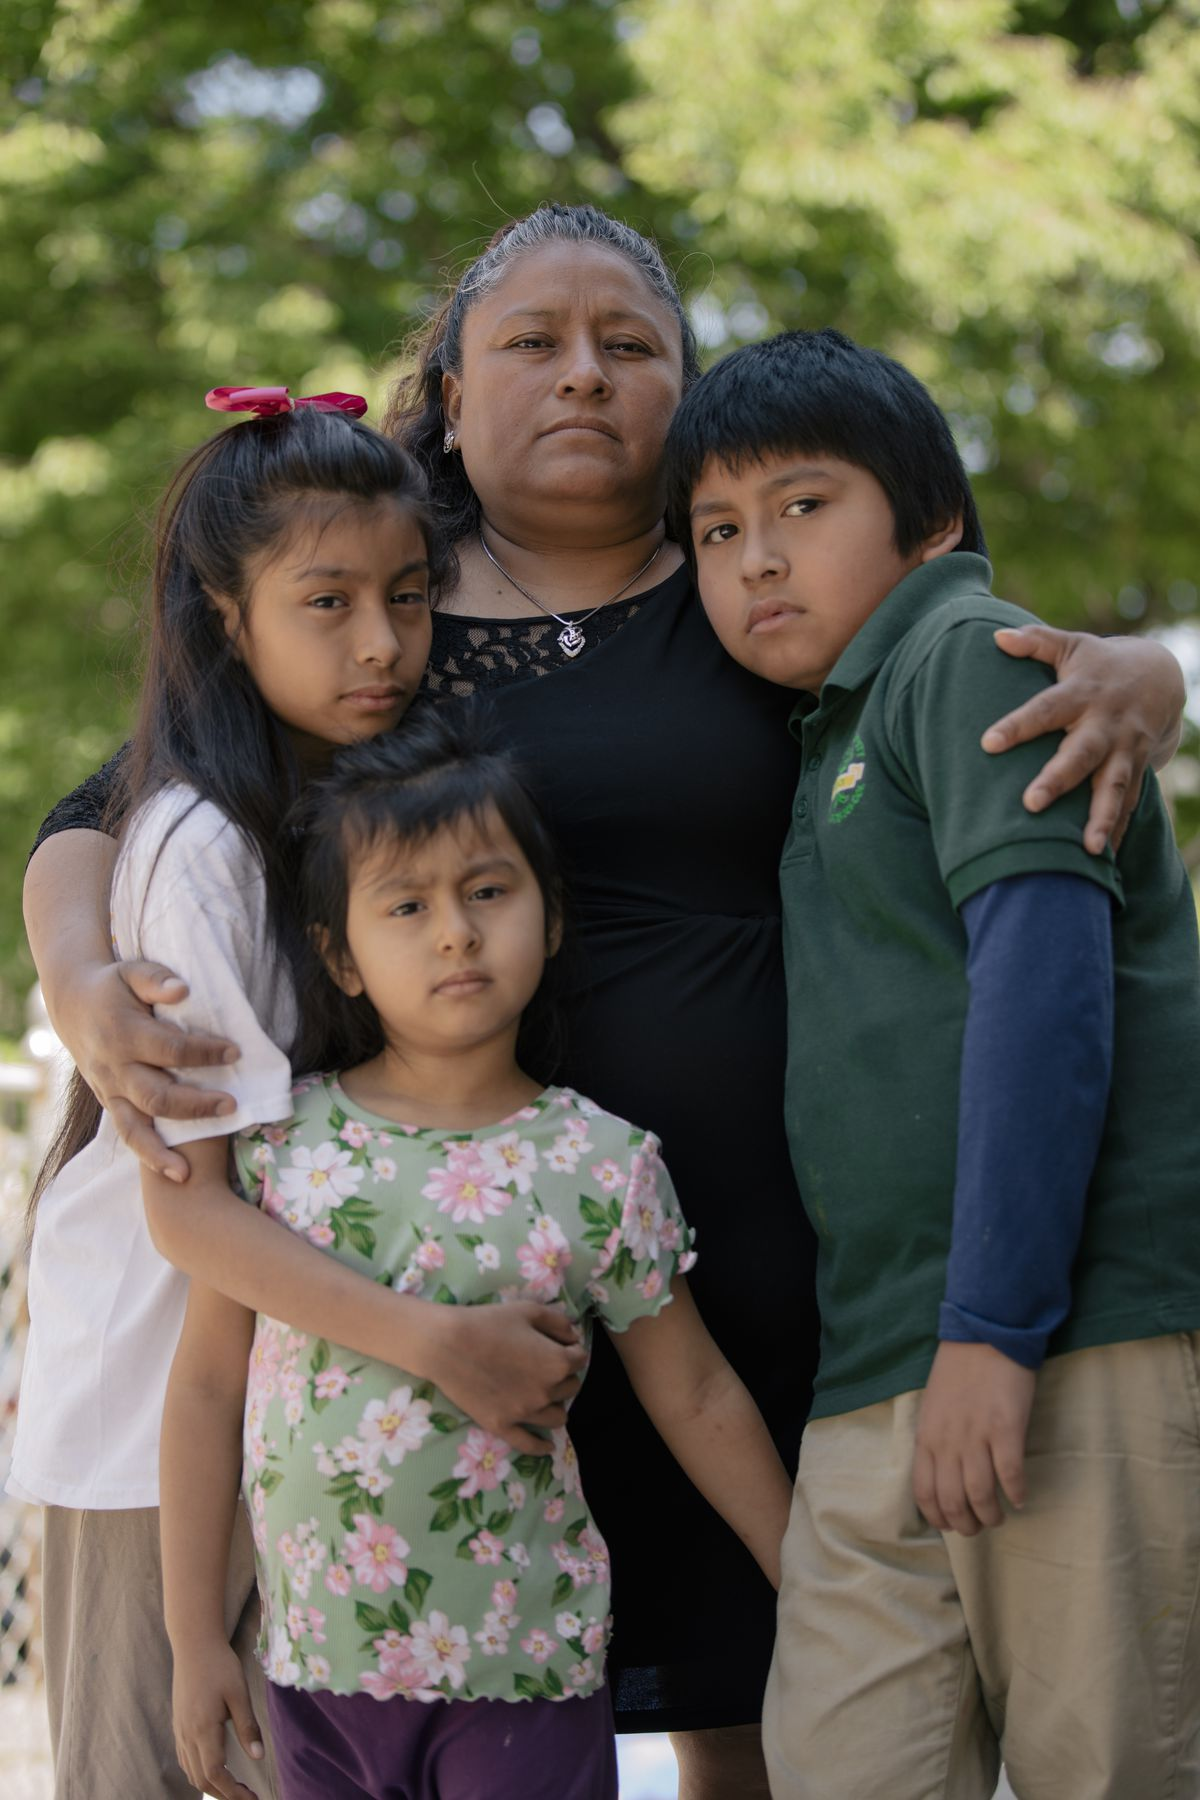 Patricia Coyotecatl (top center) holds her children (left to right) Brandy, Evelyn and Noel. Noel is wearing his green Roseville uniform.